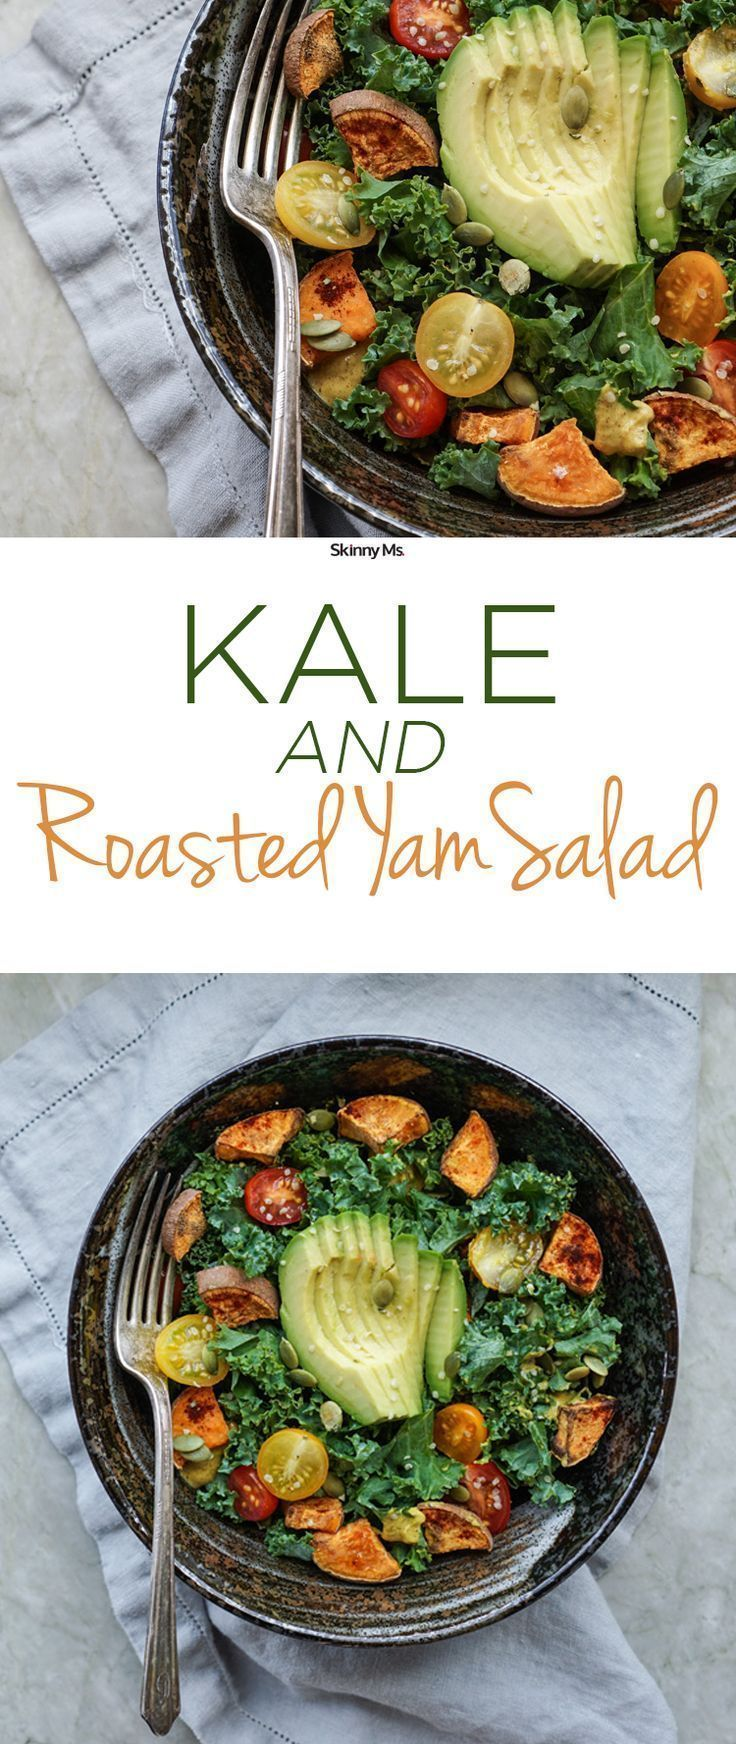 This Kale and Roasted Yam Salad is far from ordinary. The brightly colored veggie dish calls for unconventional salad foods like sweet potatoes to amp up the flavor.